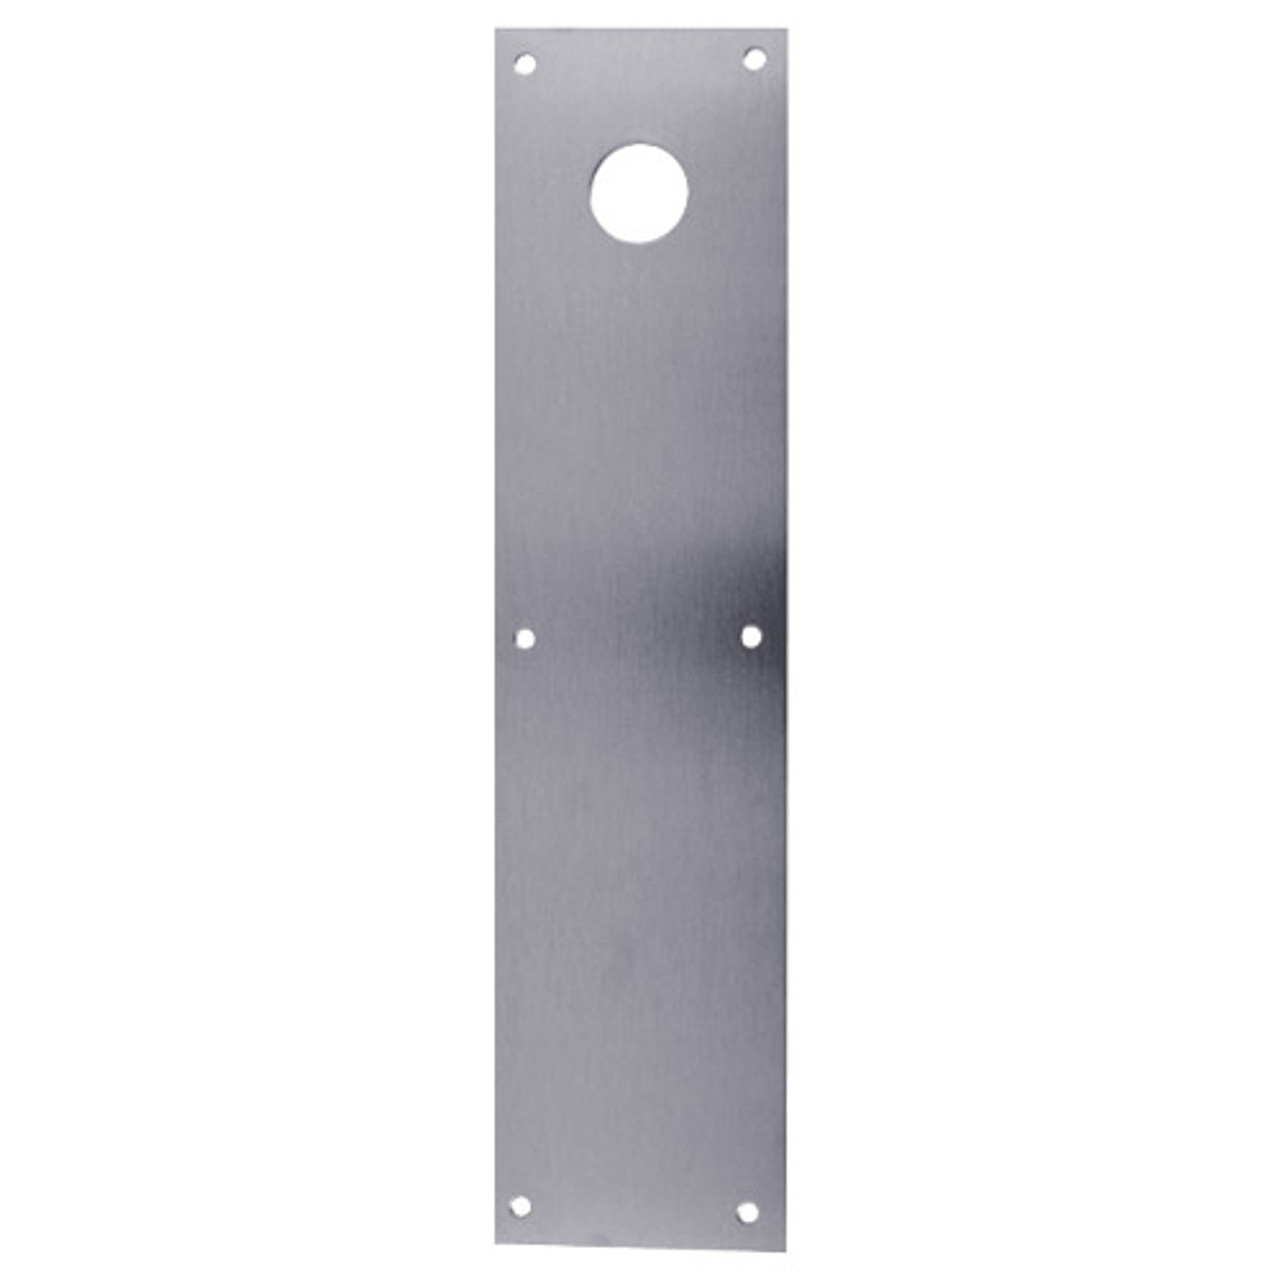 CFC70-630 Don Jo Push Plates with Holes in Satin Stainless Steel Finish